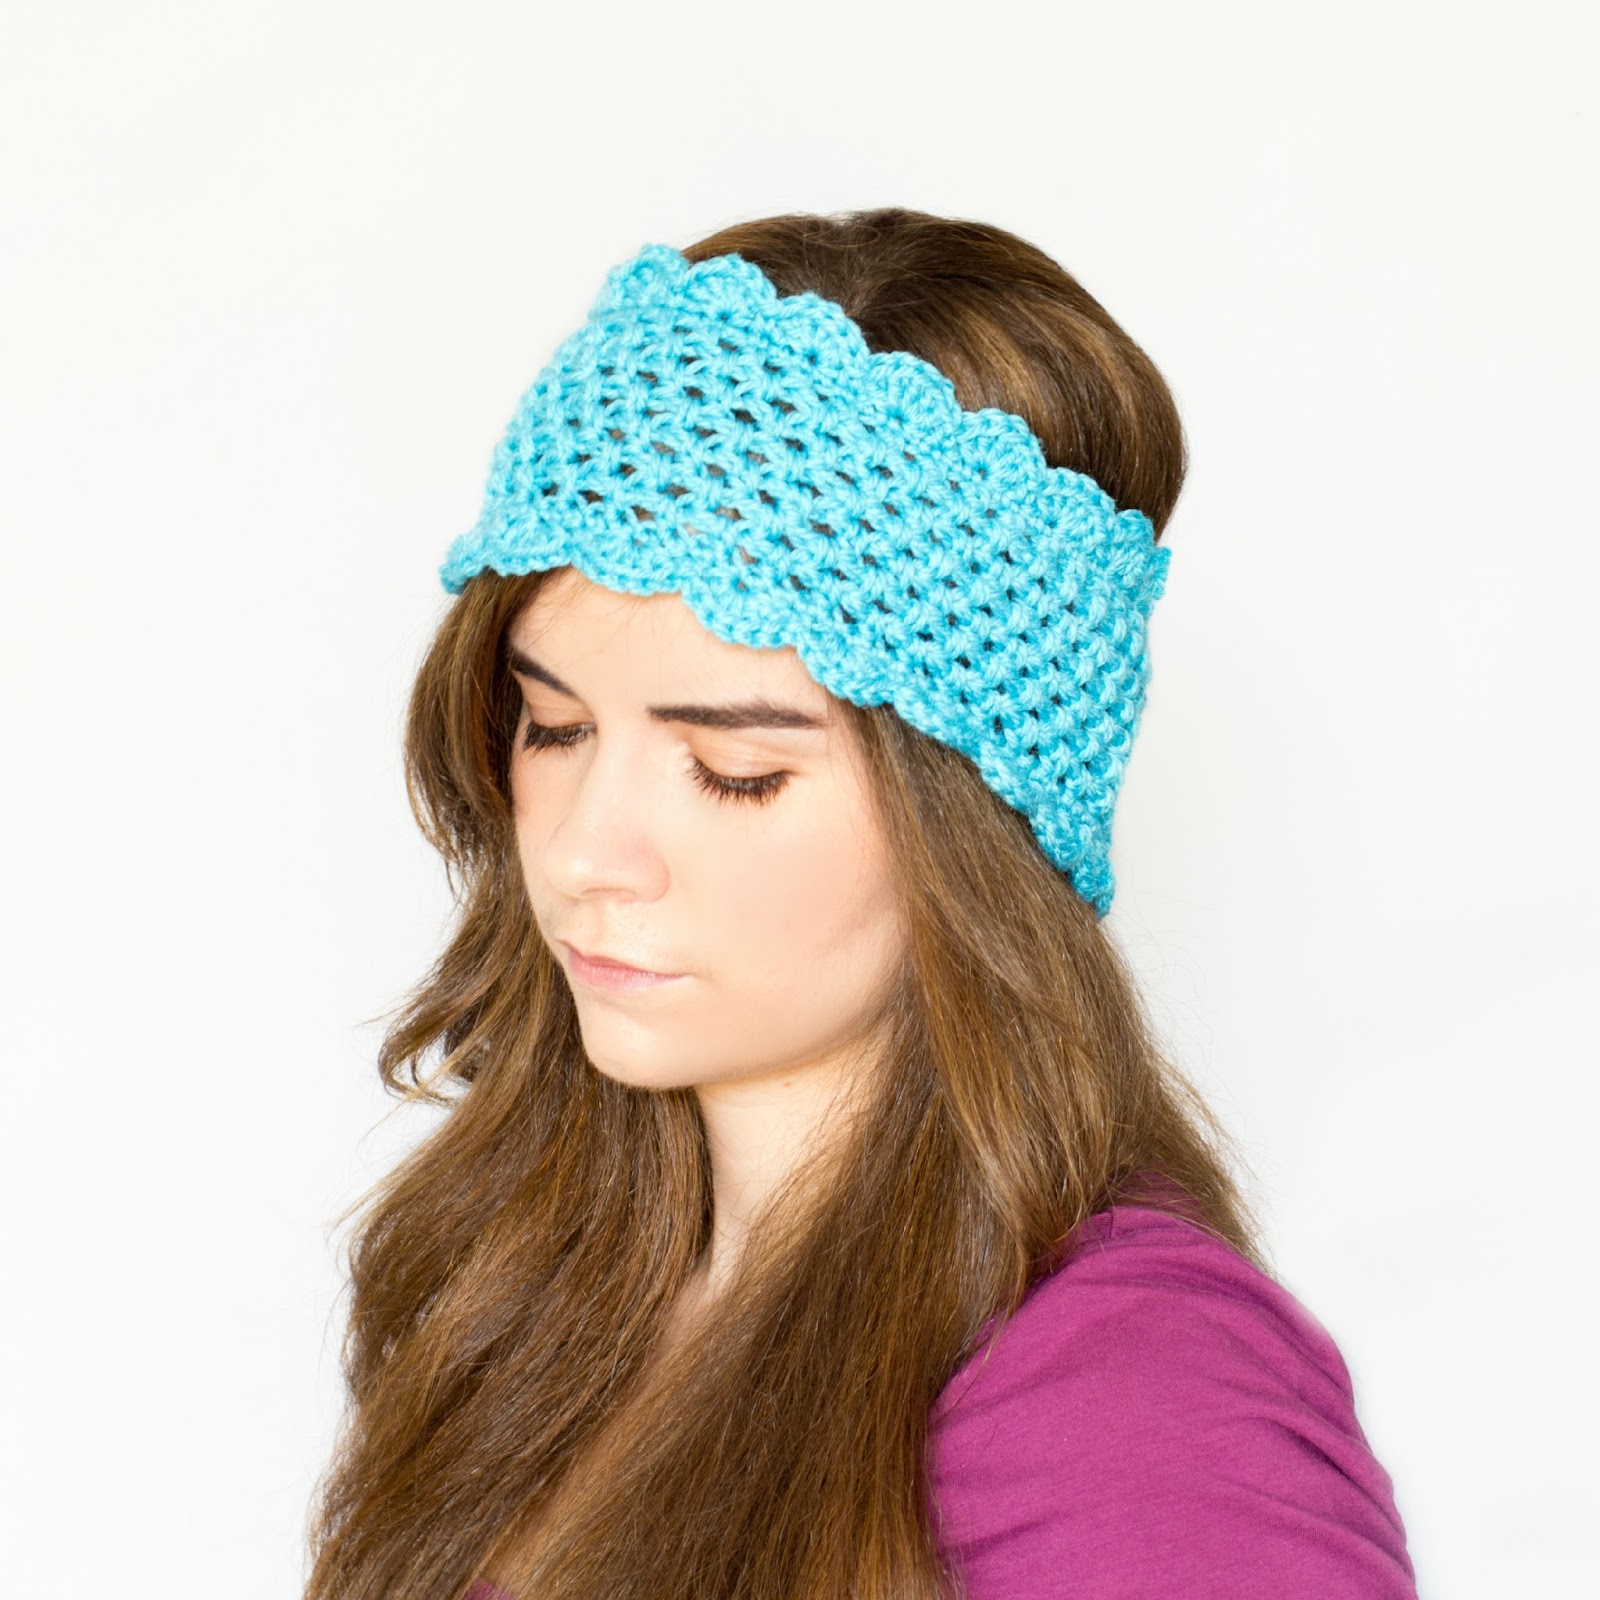 Free Adjustable Crochet Headband Pattern : Dainty Scalloped Ear Warmer - Interweave